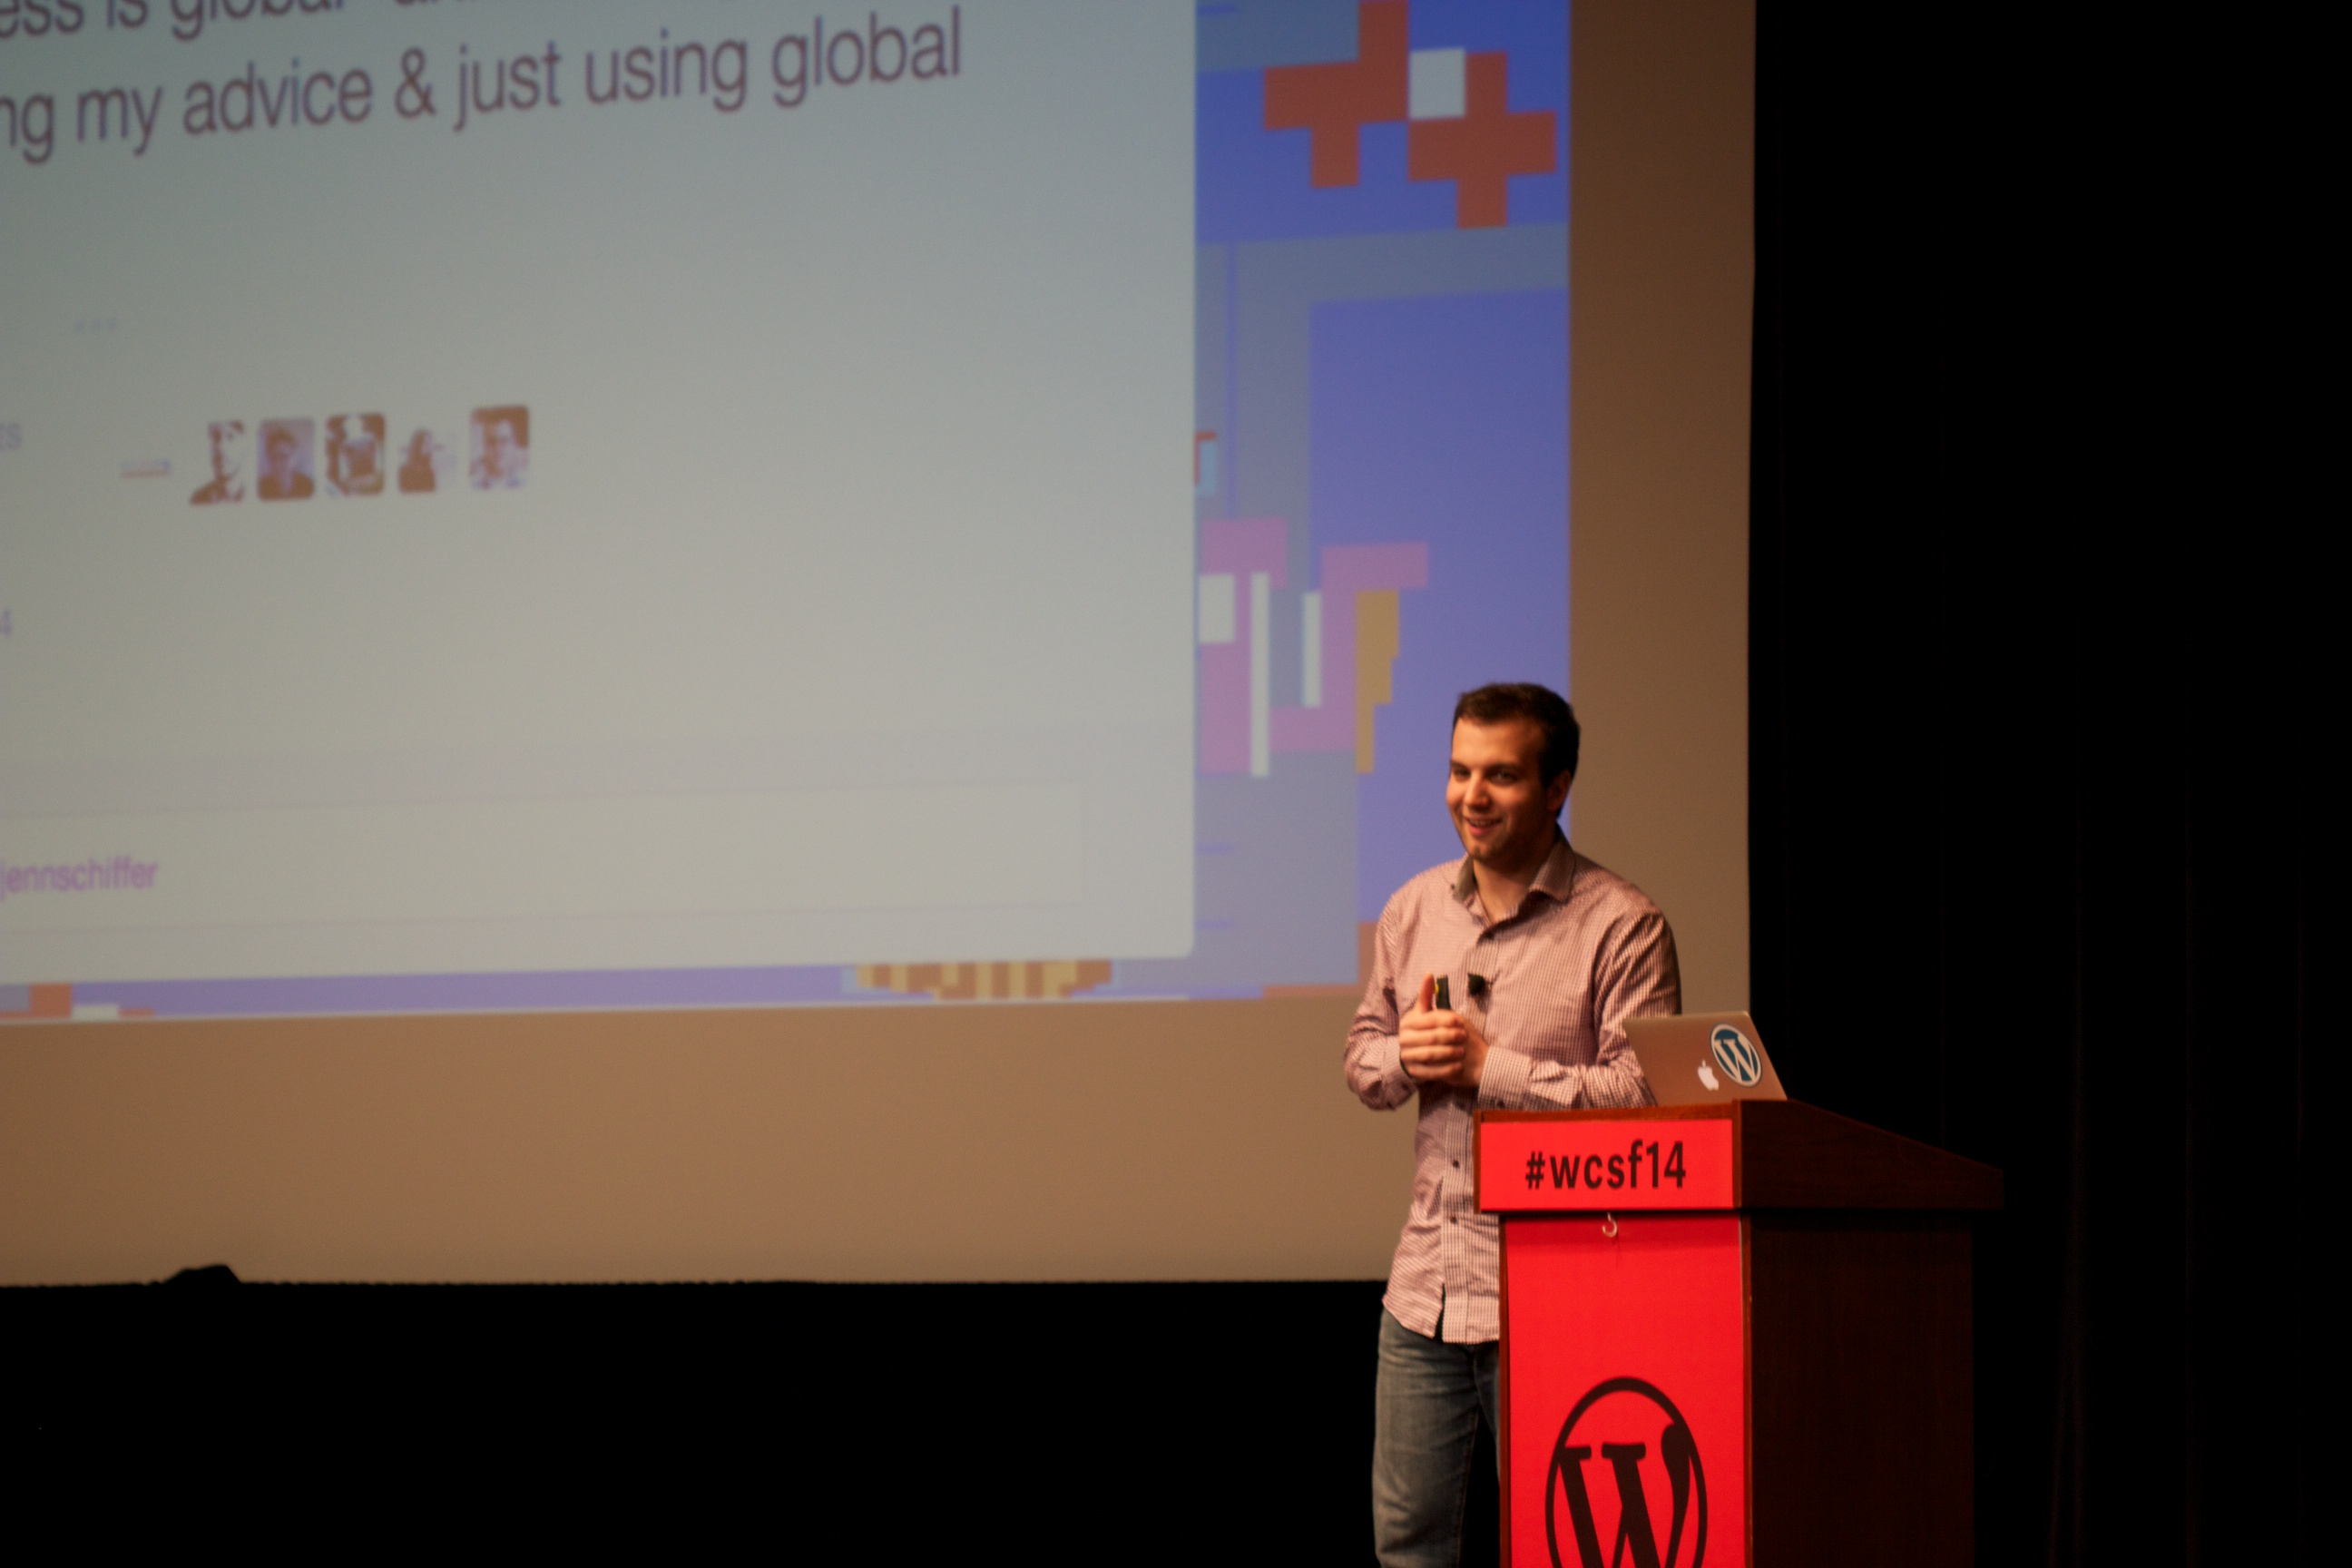 Andrew Nacin on stage giving a presentation.